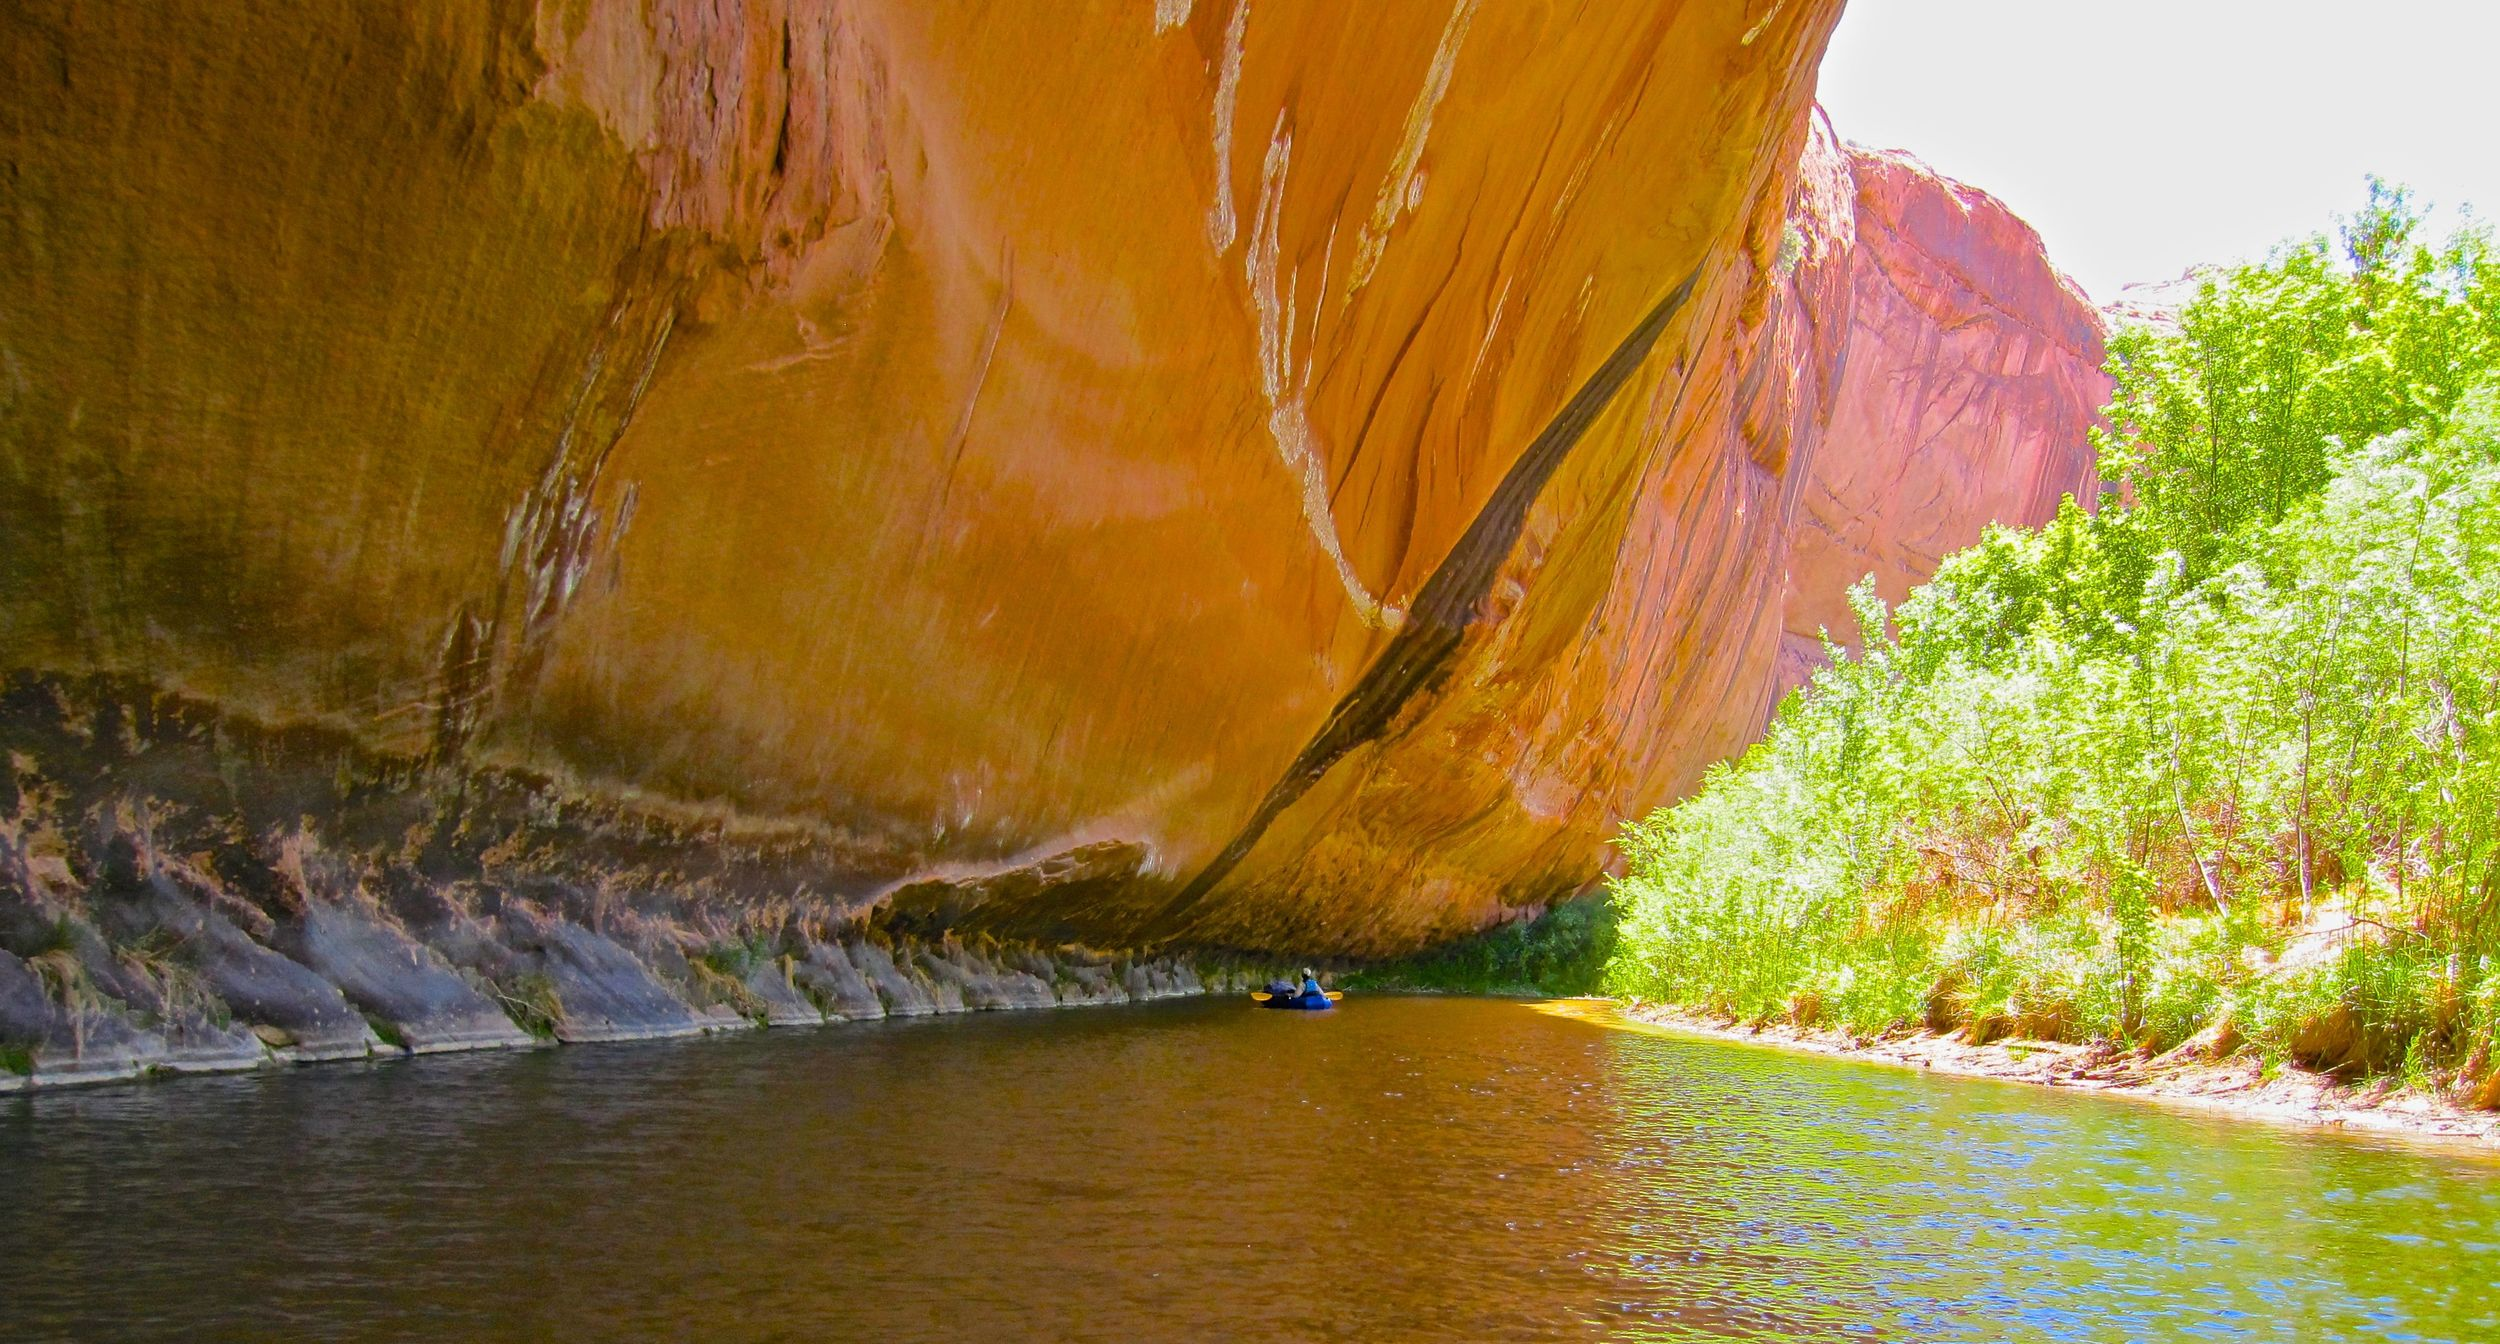 Karen paddles beneath a long alcove that overhangs the river. The key to packrafting in Escalante is heading out while the flow is enough for a good trip. Much of the year the water is too low for paddling along the upper reaches of the river.